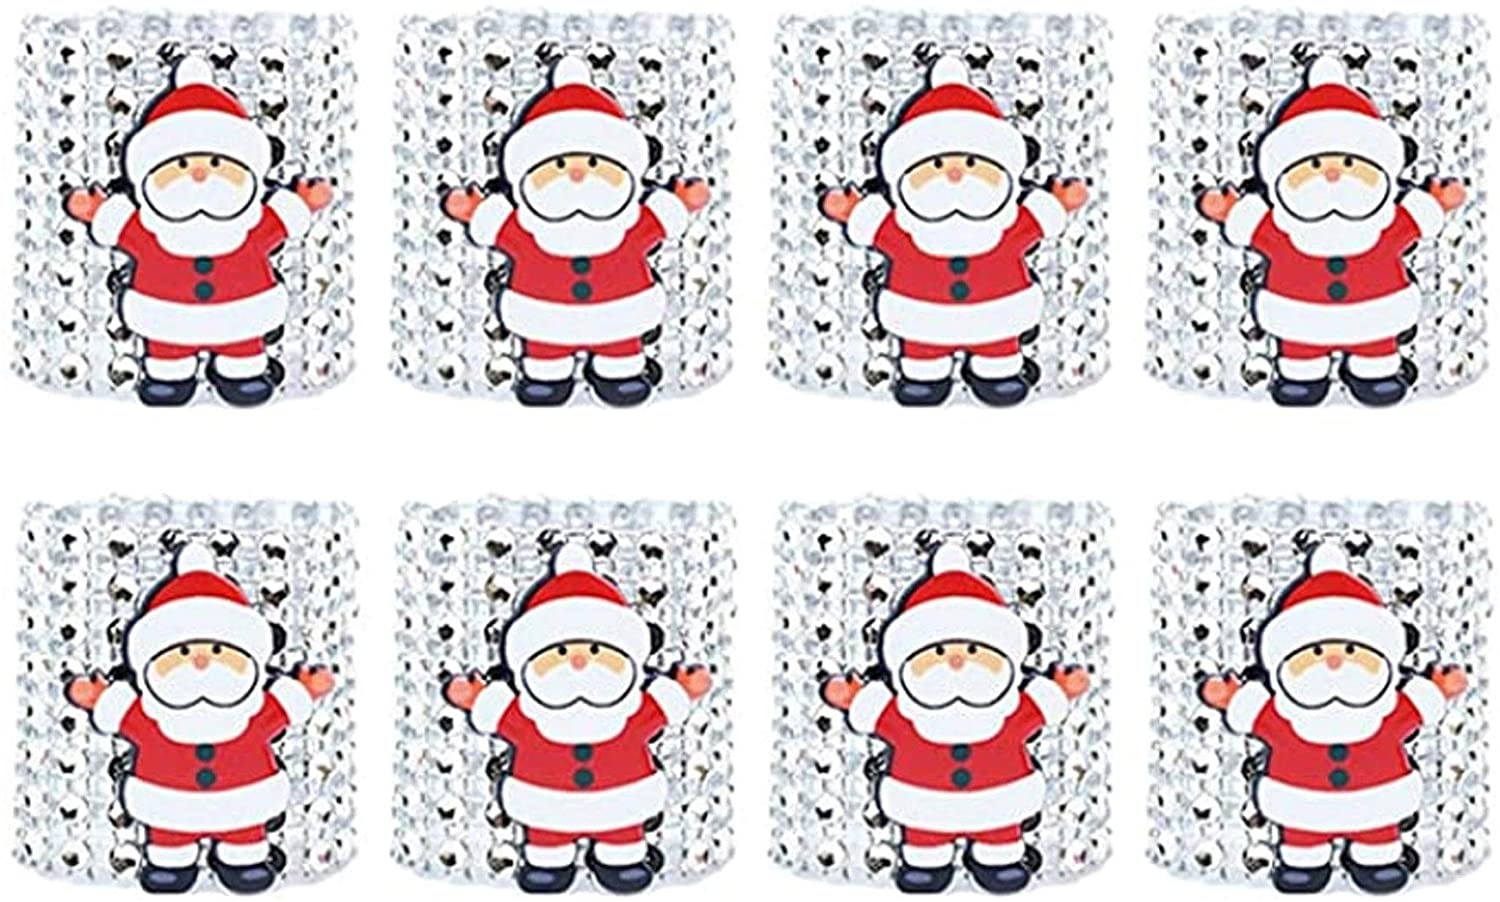 Santa Claus Napkin Rings Set of 8 for Christmas Dinning Table Setting-Wedding Receptions,Christmas,Thanksgiving and Home Kitchen for Casual or Formal